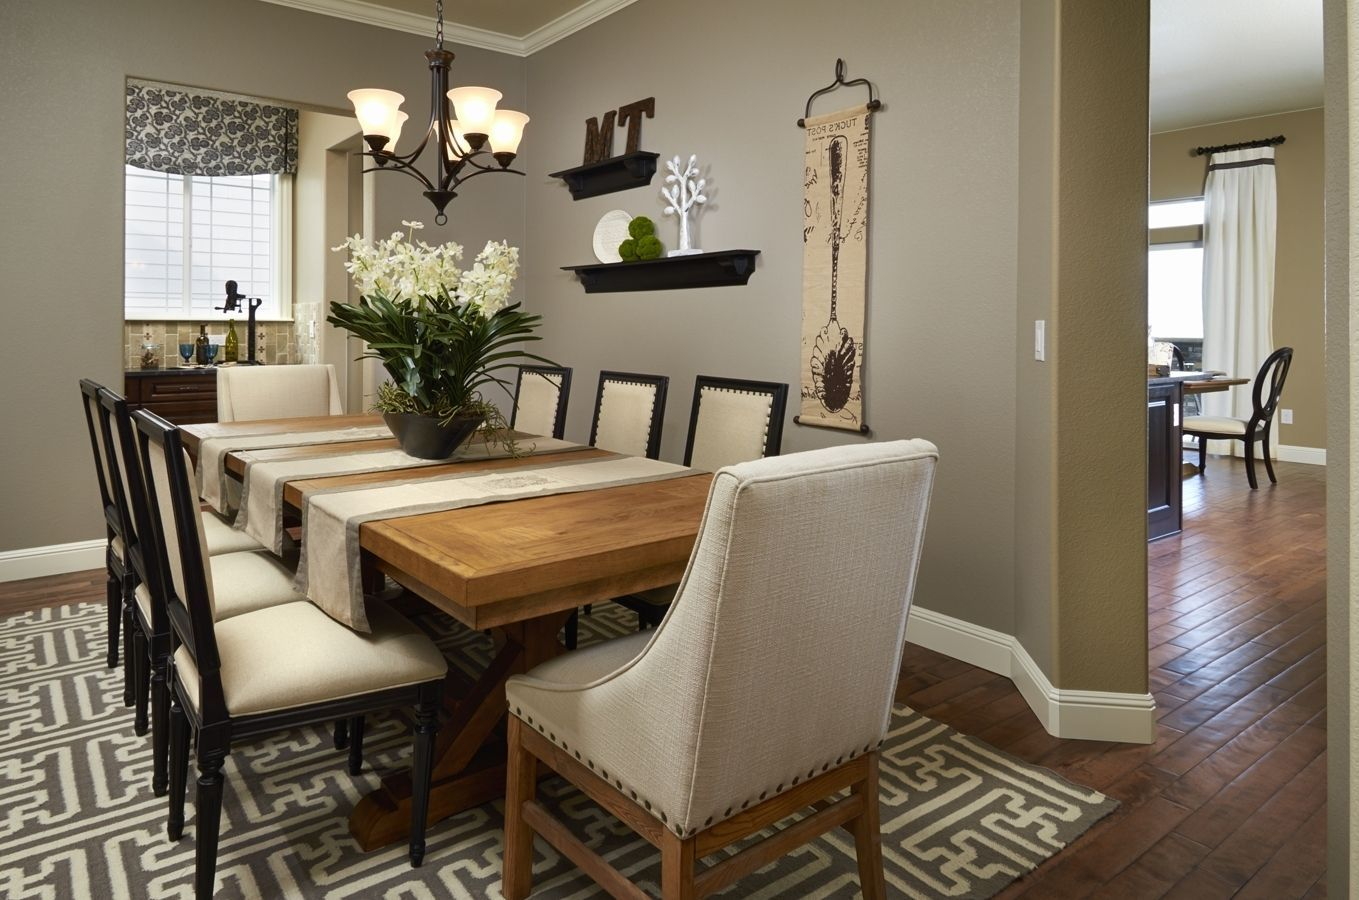 Dining Room Painting Ideas Formal Dining Room Lighting Home Decorate Cool 25 Formal Dining Elegant Dining Room Small Dining Room Decor Formal Dining Room Decor